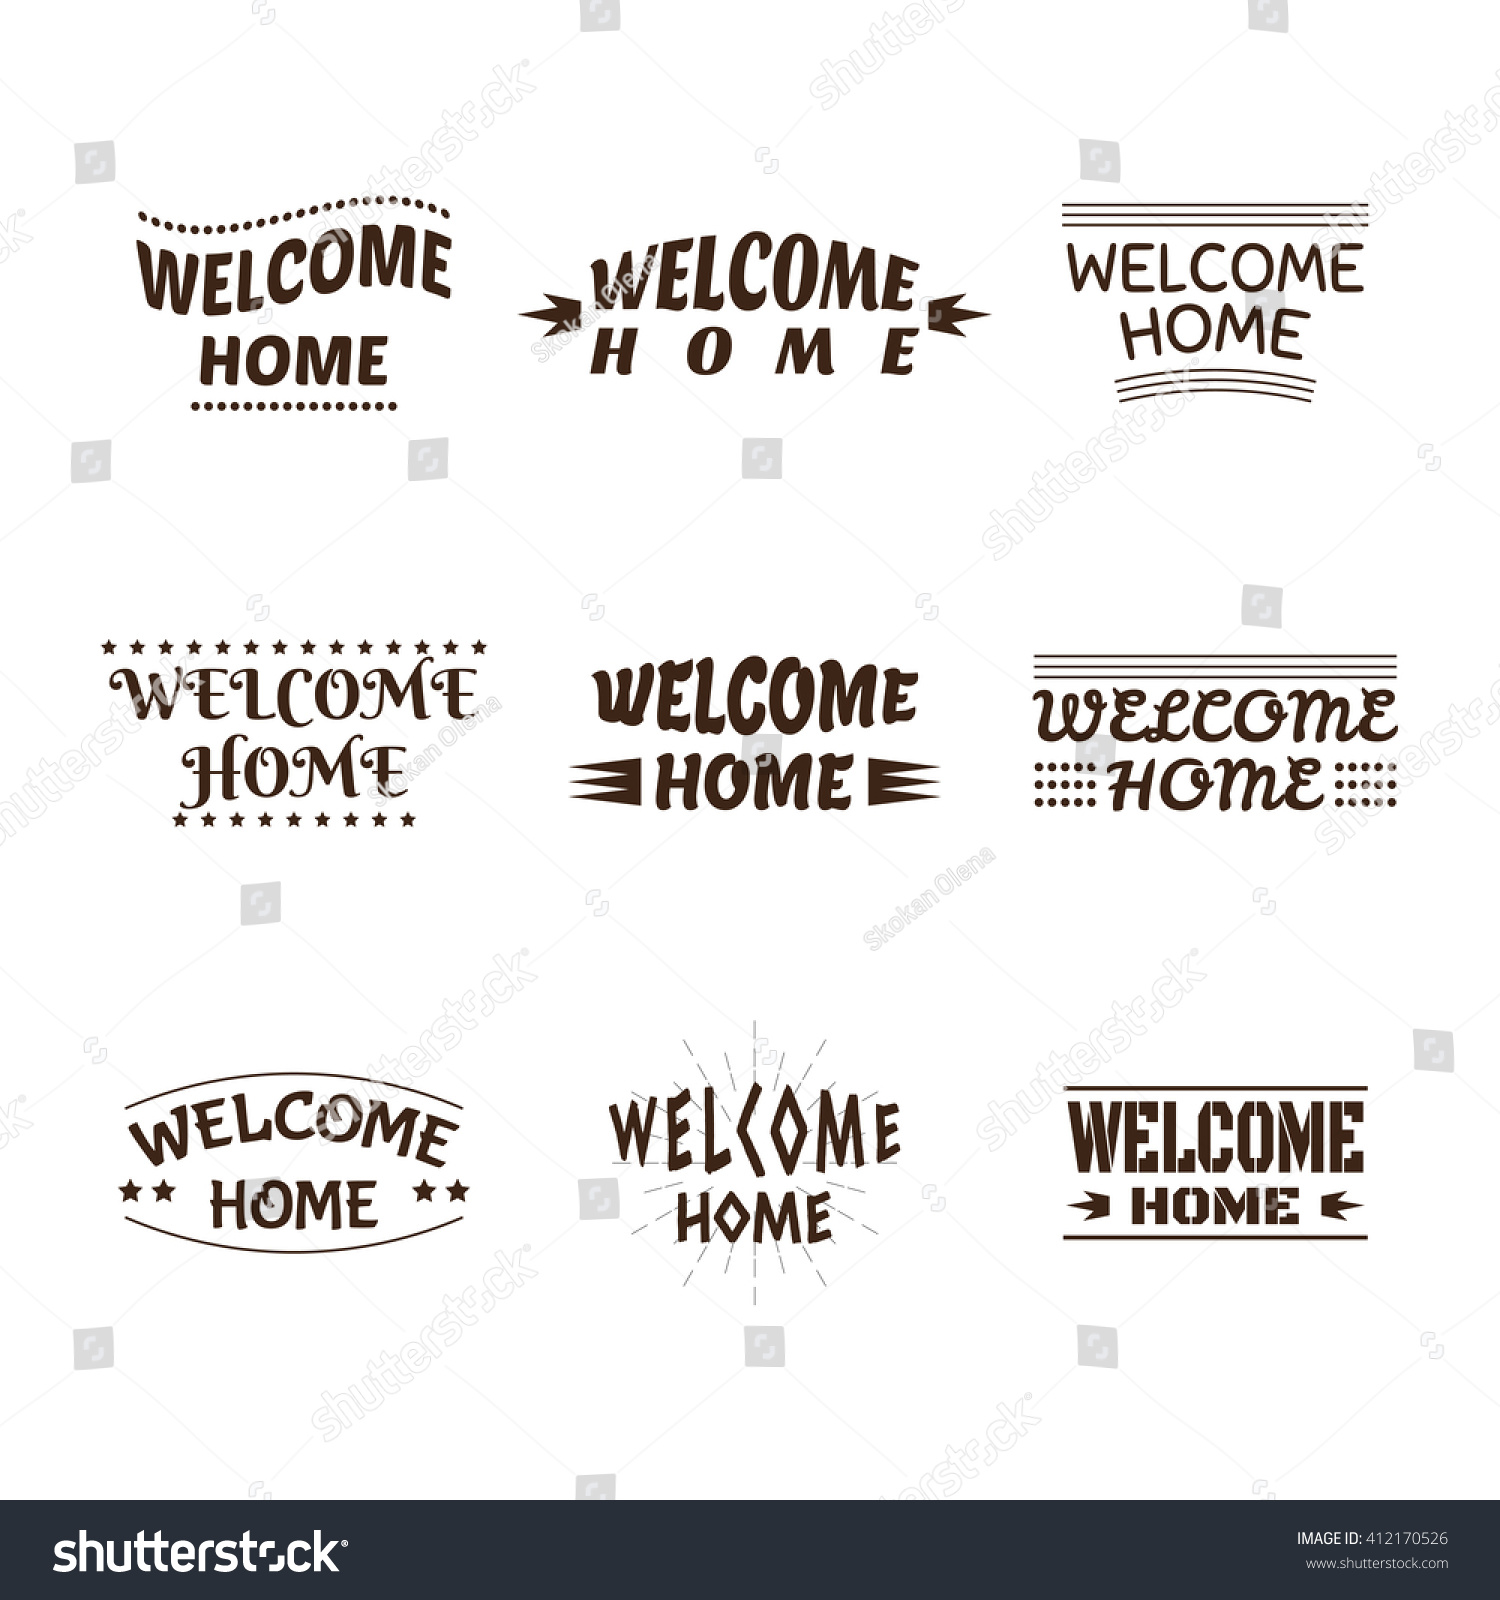 home designer collection. Welcome home design collection  Set of 9 labels emblems stickers or badges Home Design Collection Stock Vector 412170526